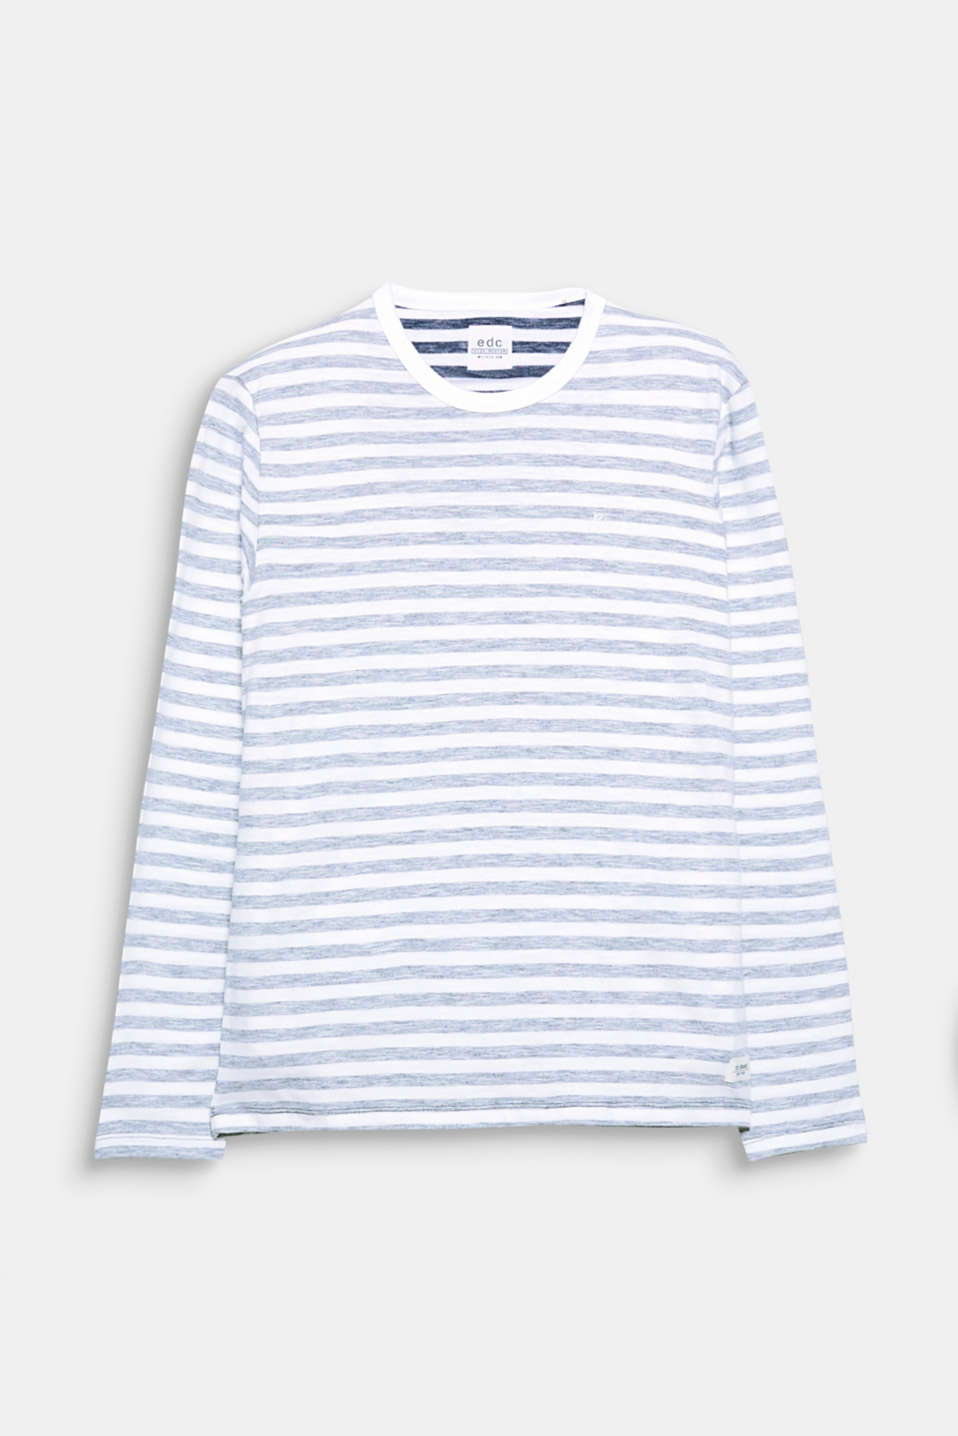 Urban and nautical in one: the inside-out stripe print makes this long sleeve top look mega cool.